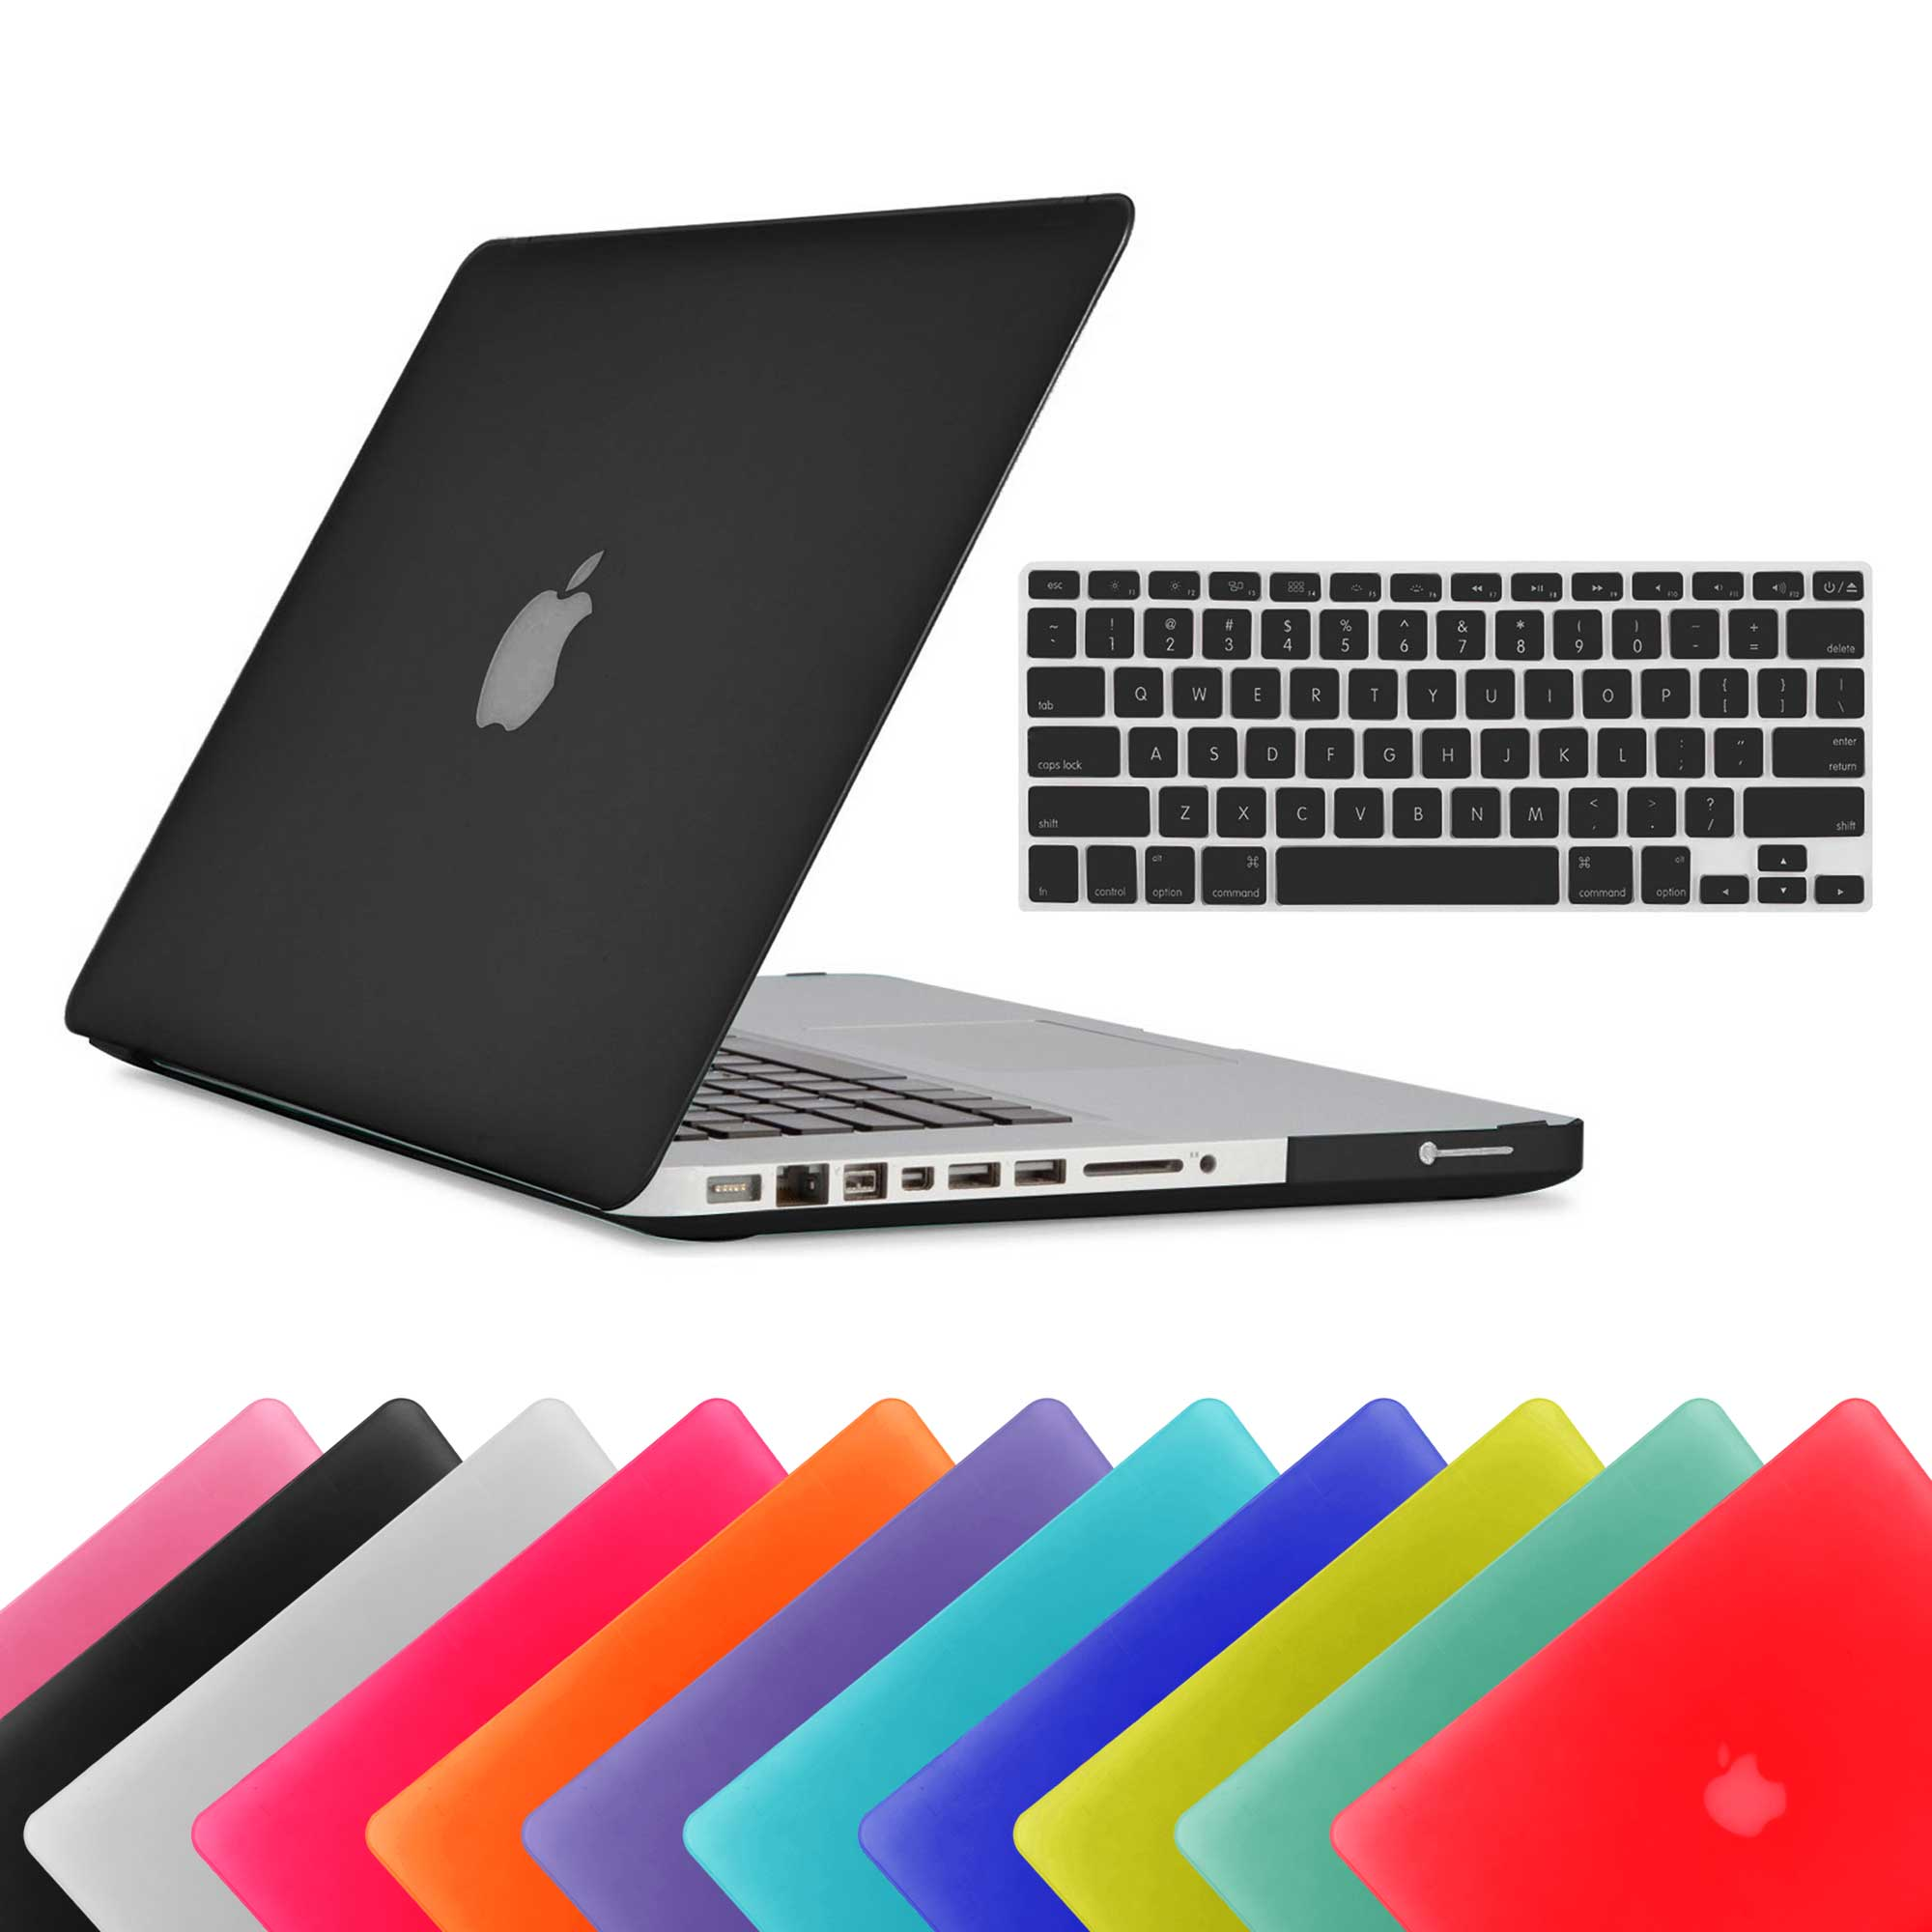 Hard-Rubberized-Matte-Case-Keybord-Skin-Cover-For-Apple-Macbook-Pro-13-13-Inch